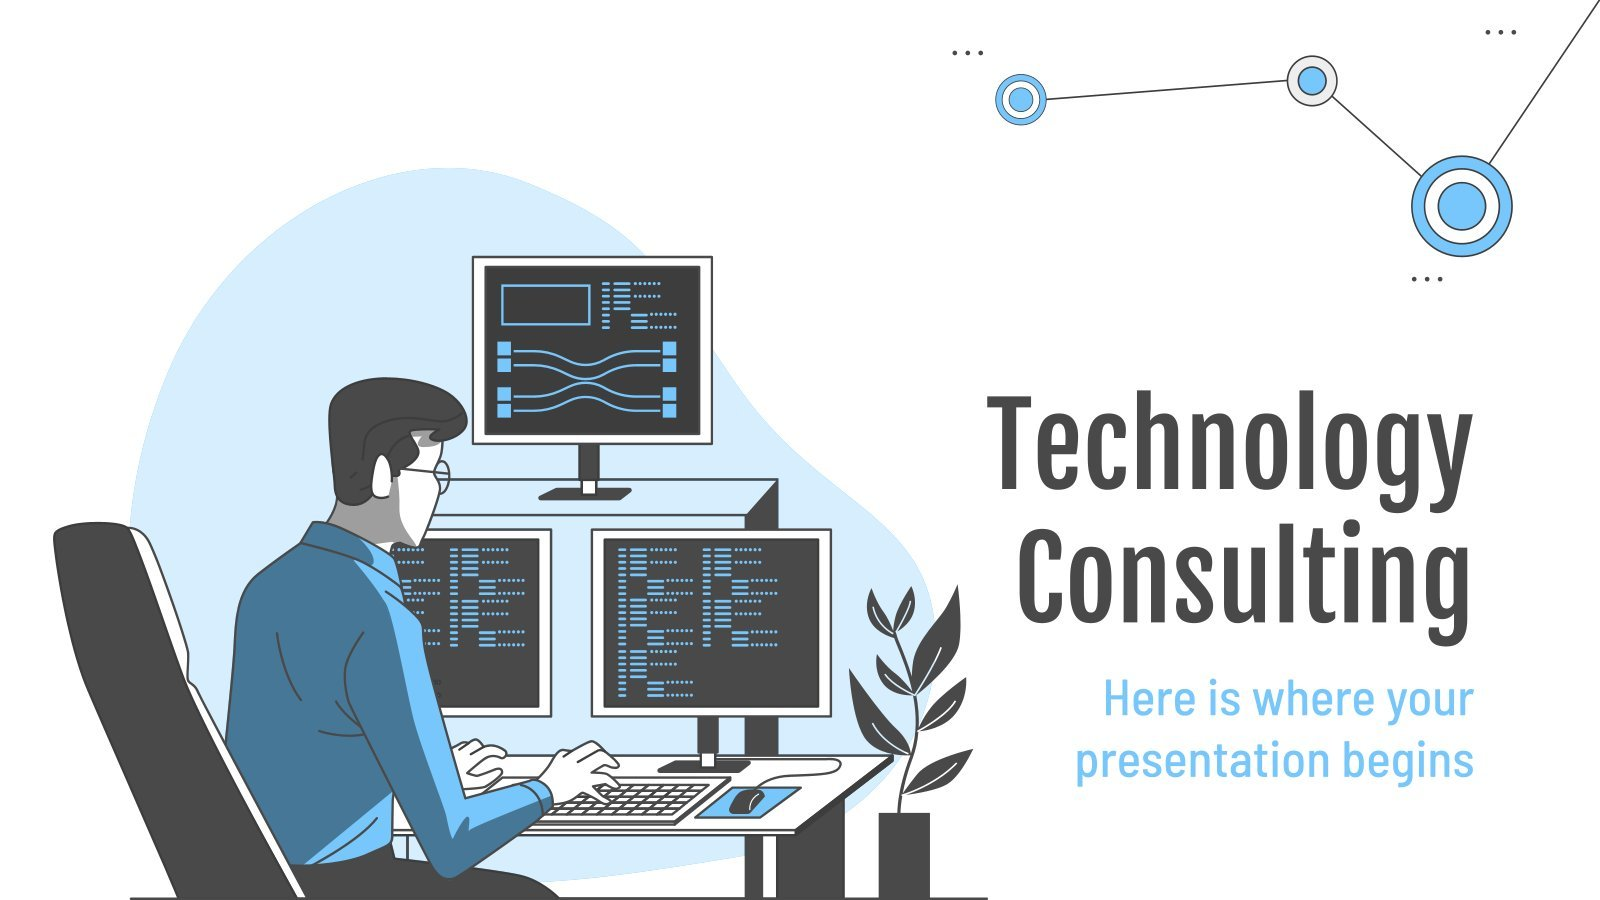 Technology Consulting presentation template